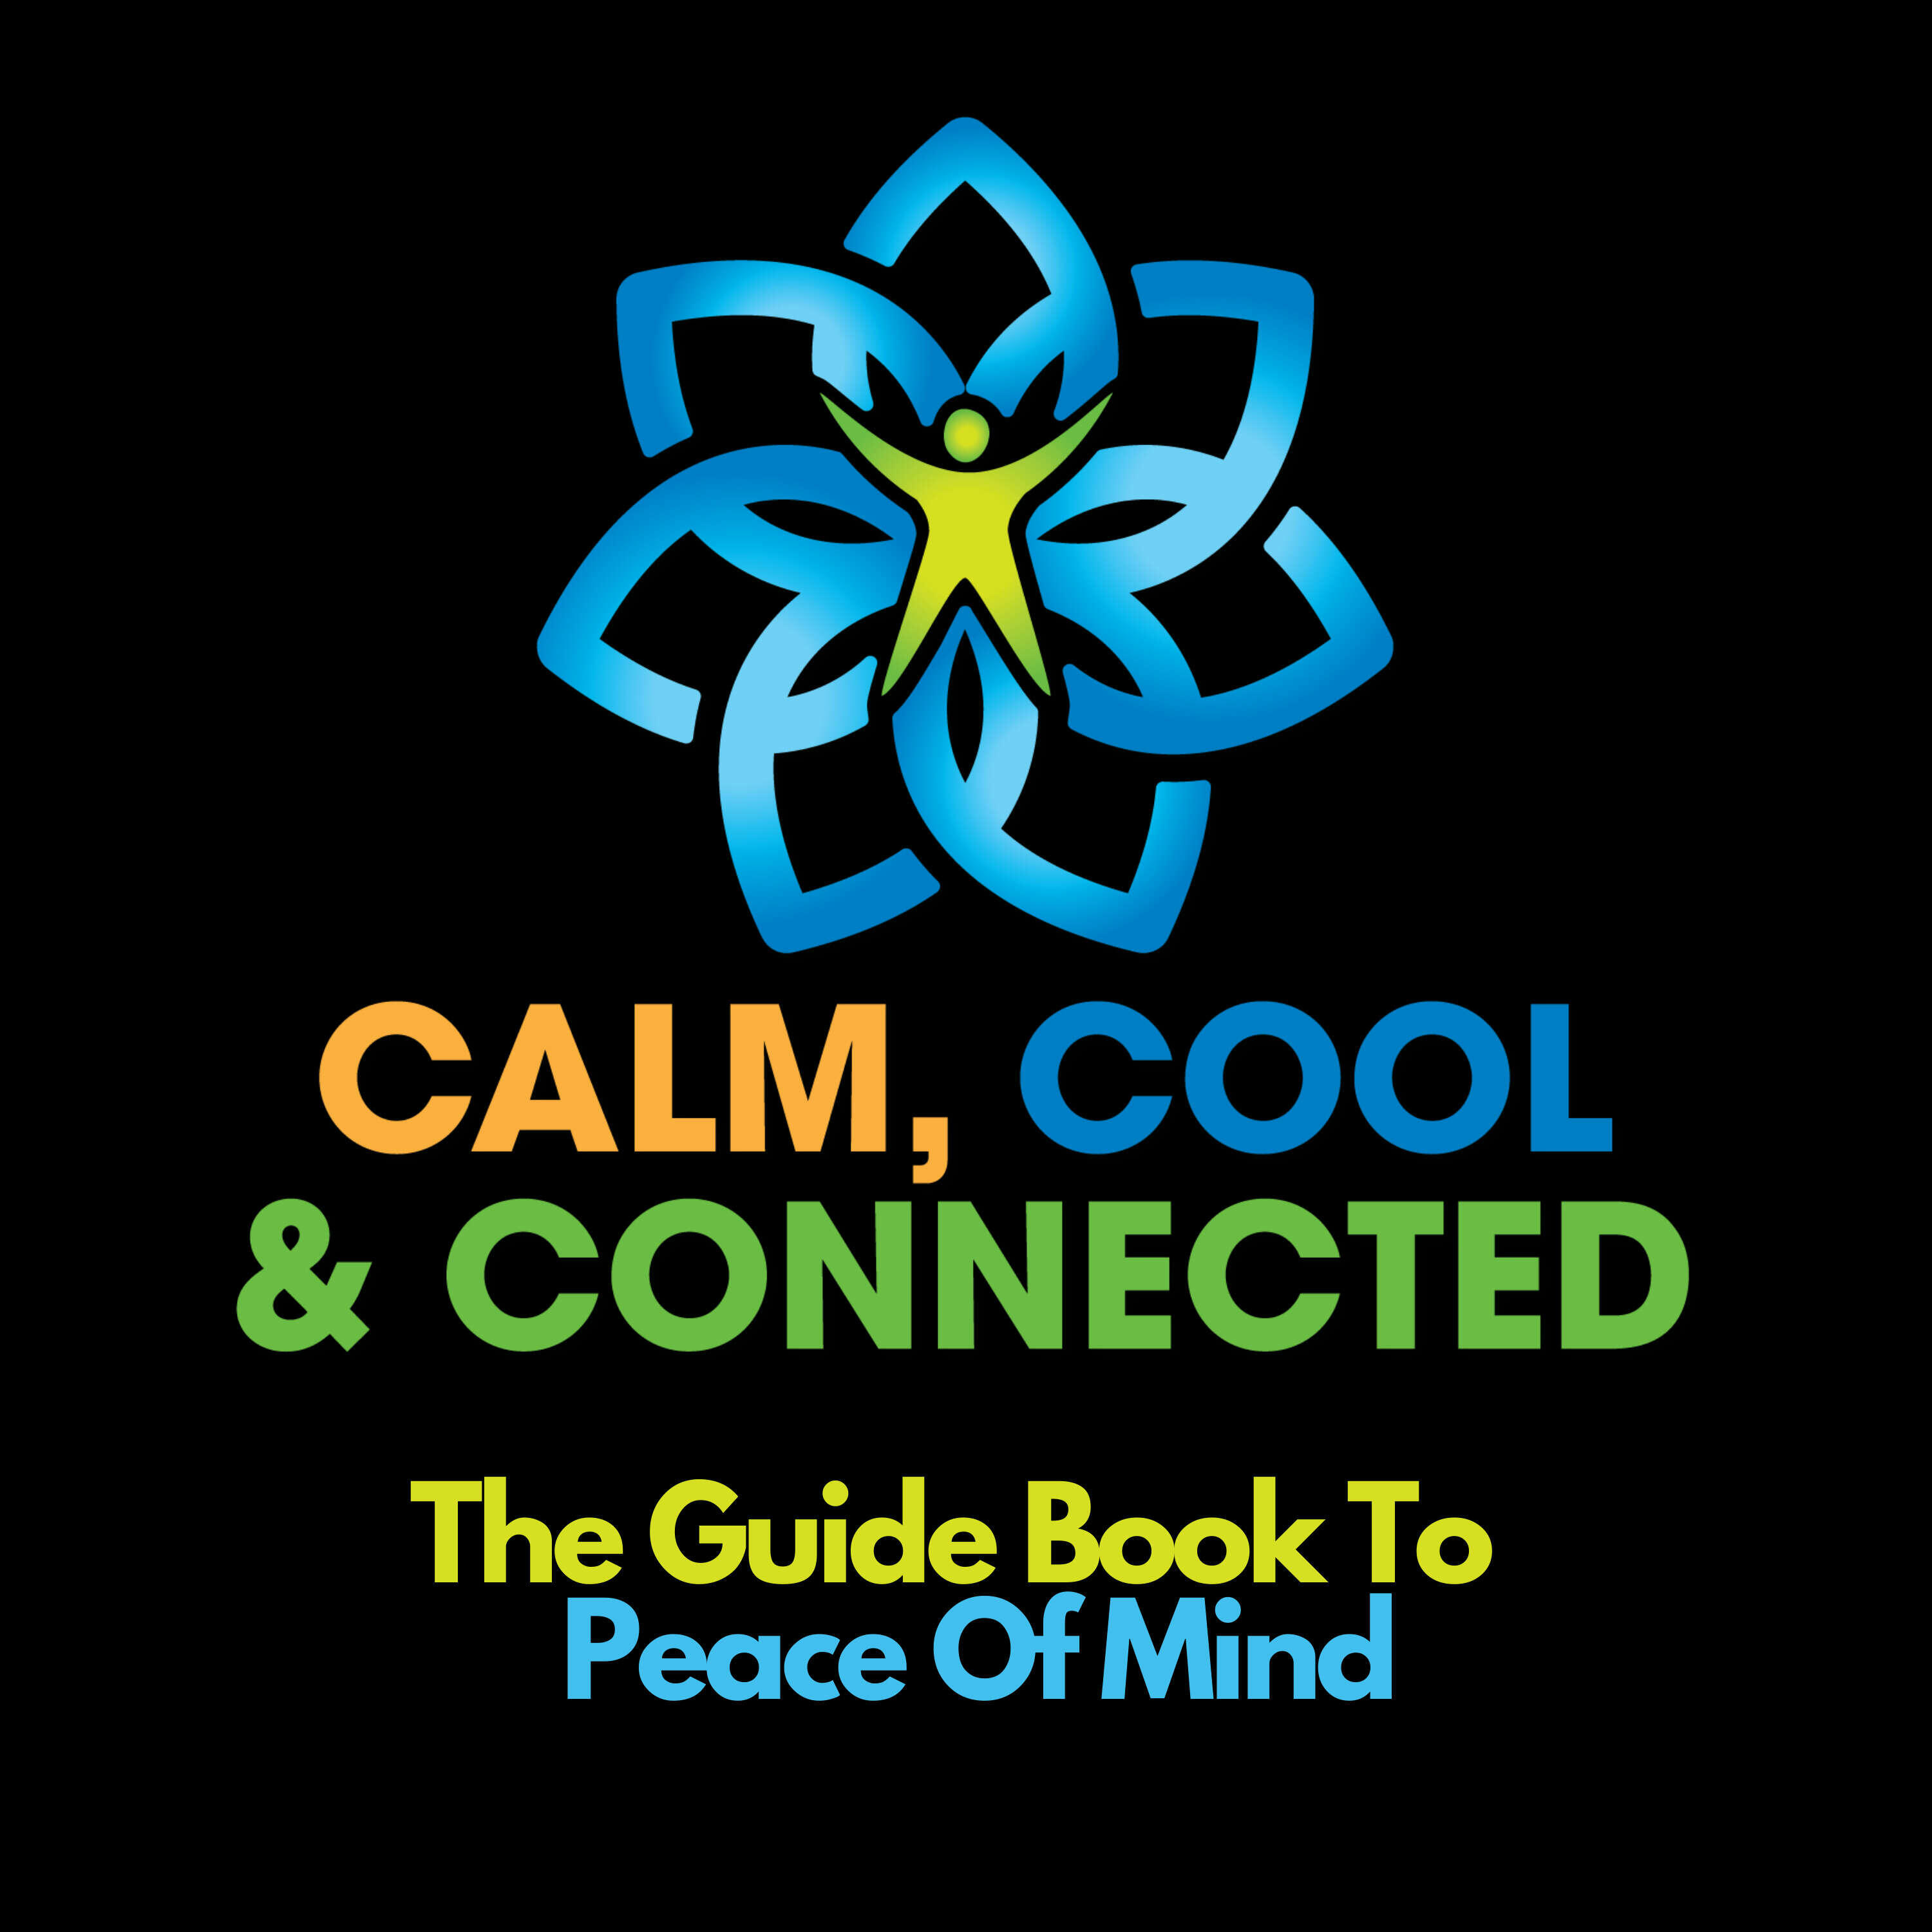 Calm, Cool and Connected - The Guide Book to Peace of Mind